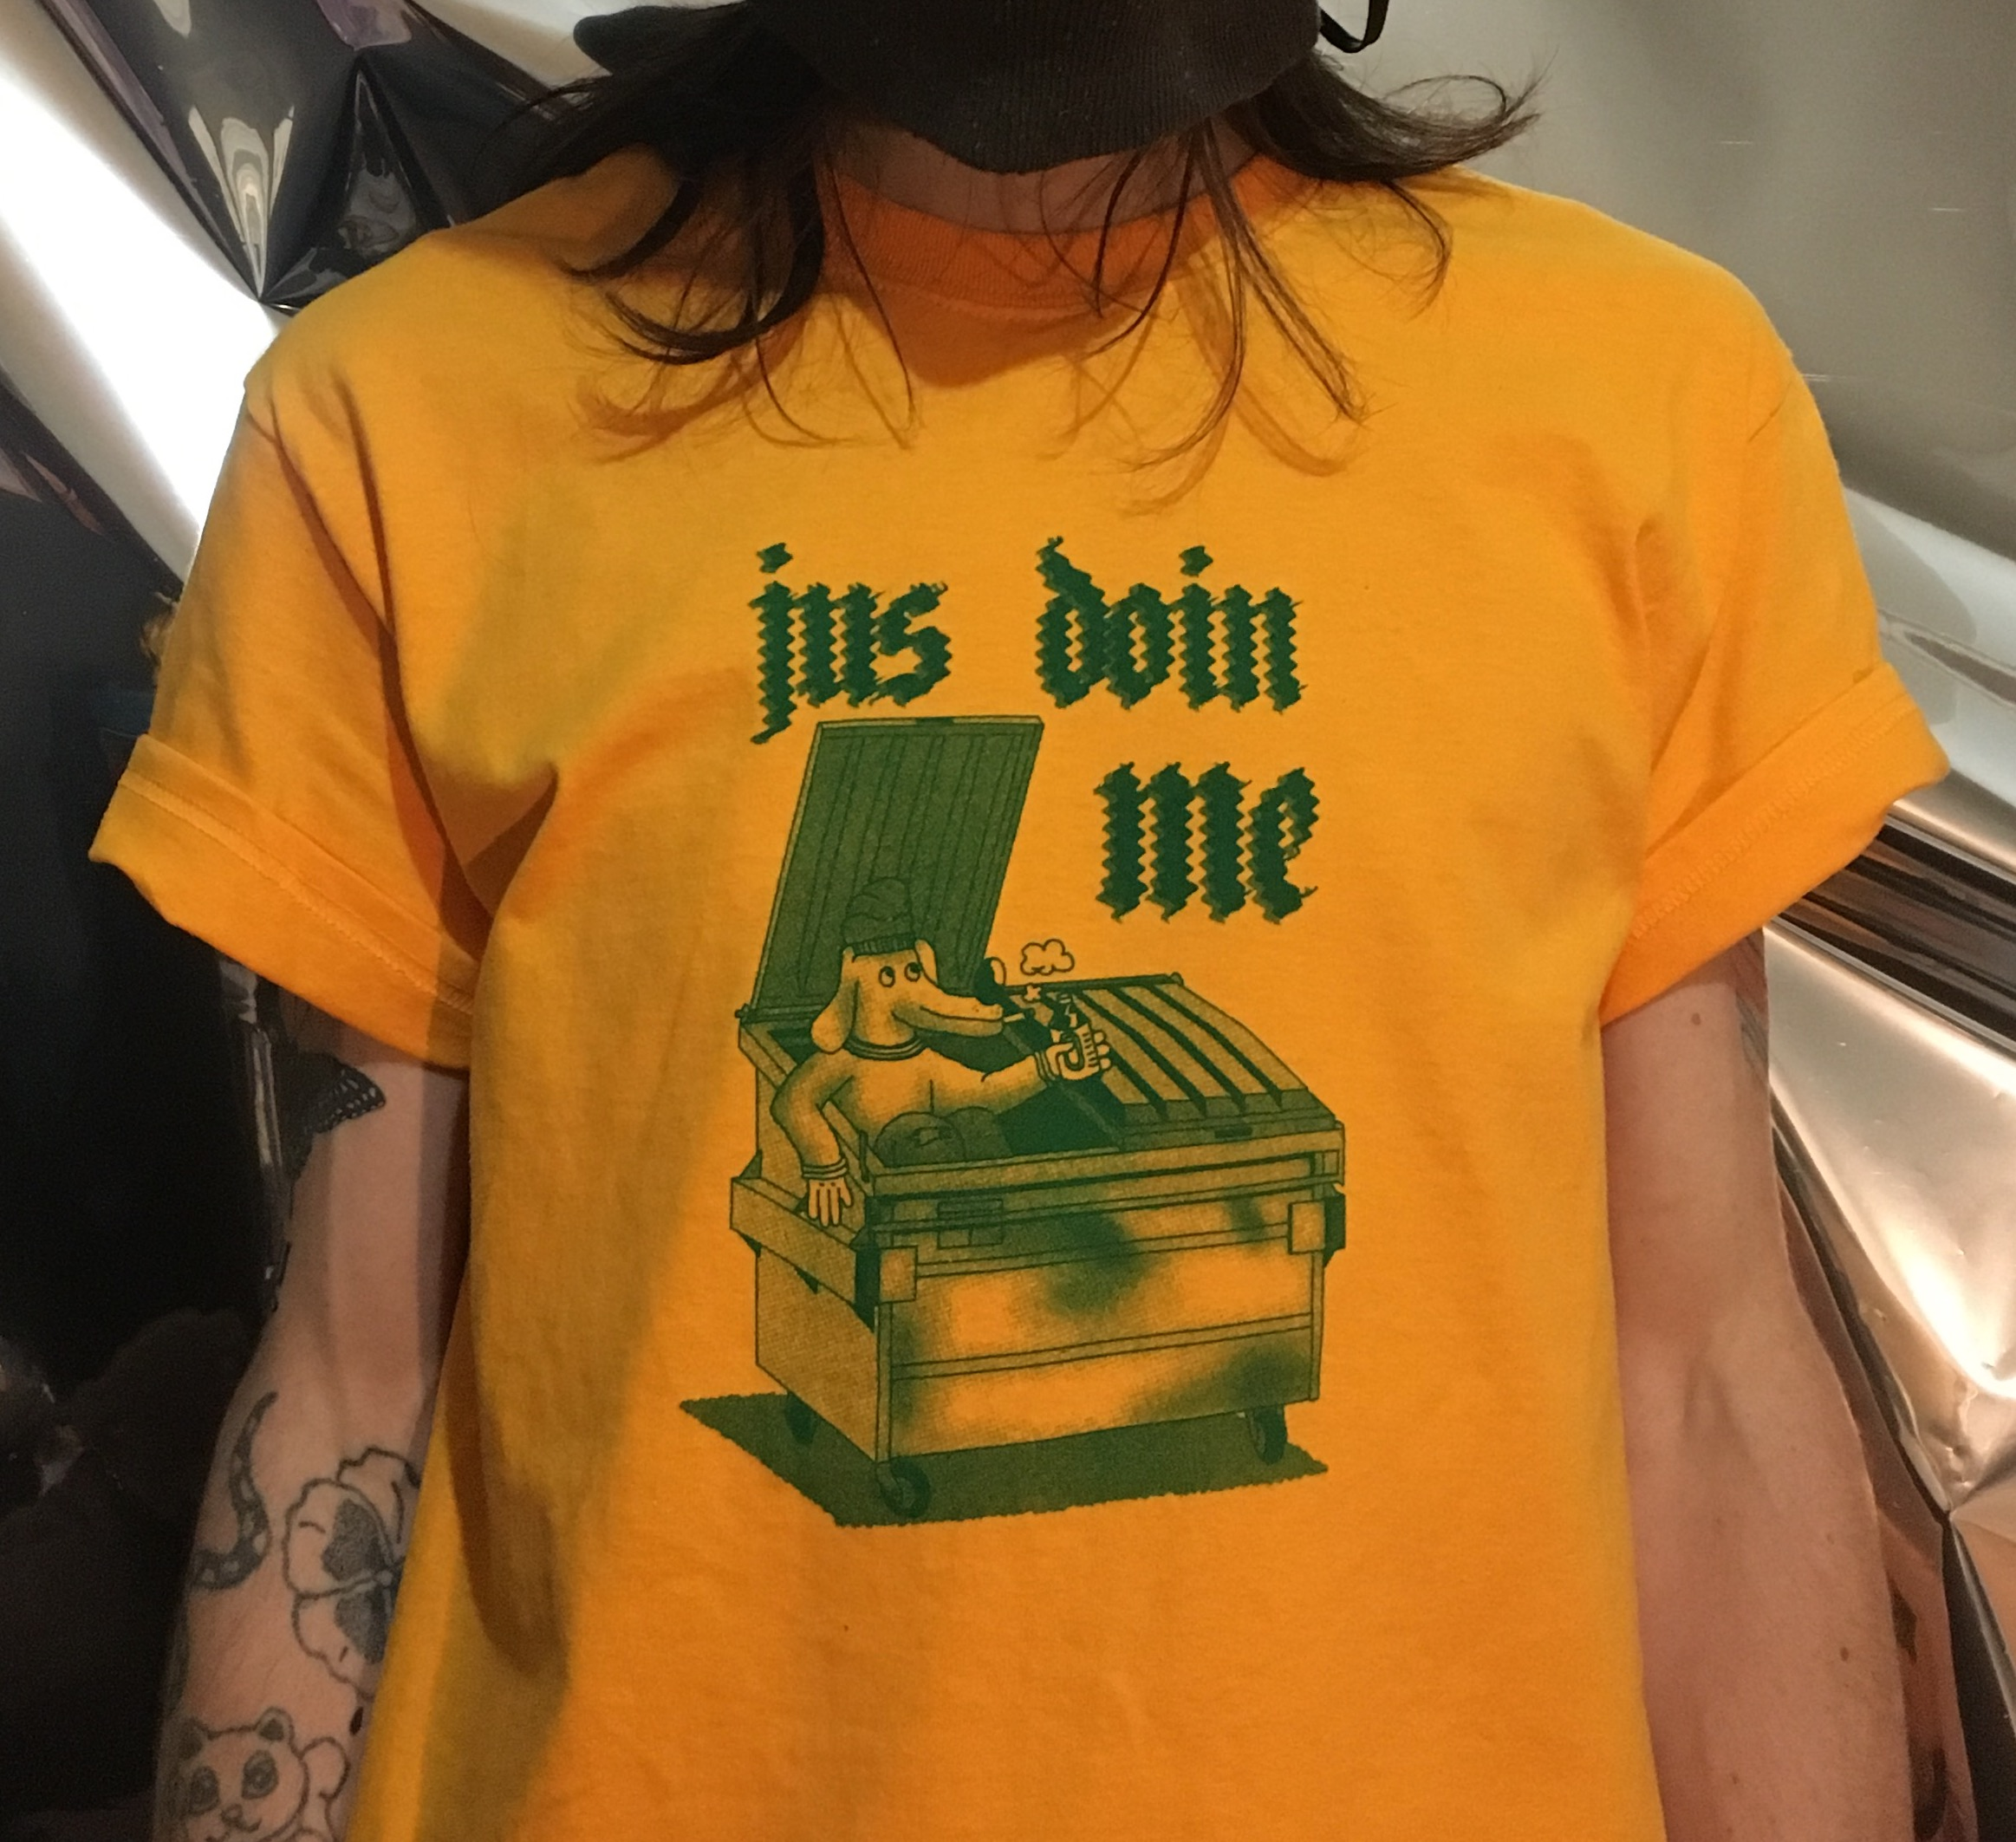 Jus Doin Me shirt - $12 + shipping  Kelly green screenprint on goldenrod Gildan Comfort tee. Available in S, M, L.